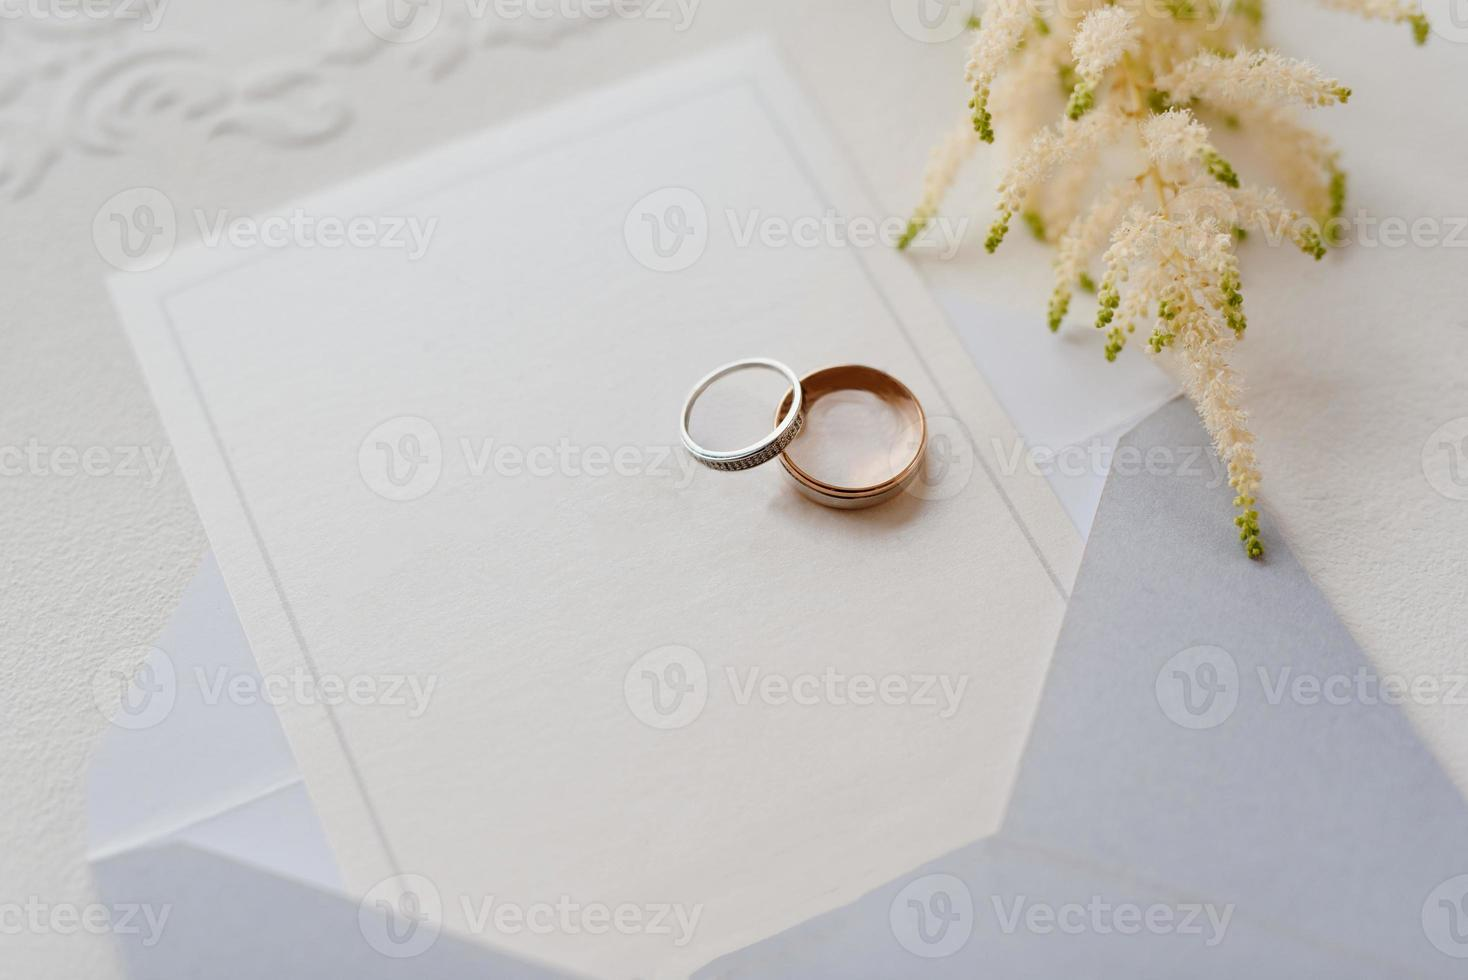 wedding rings with a gray wedding decoration photo